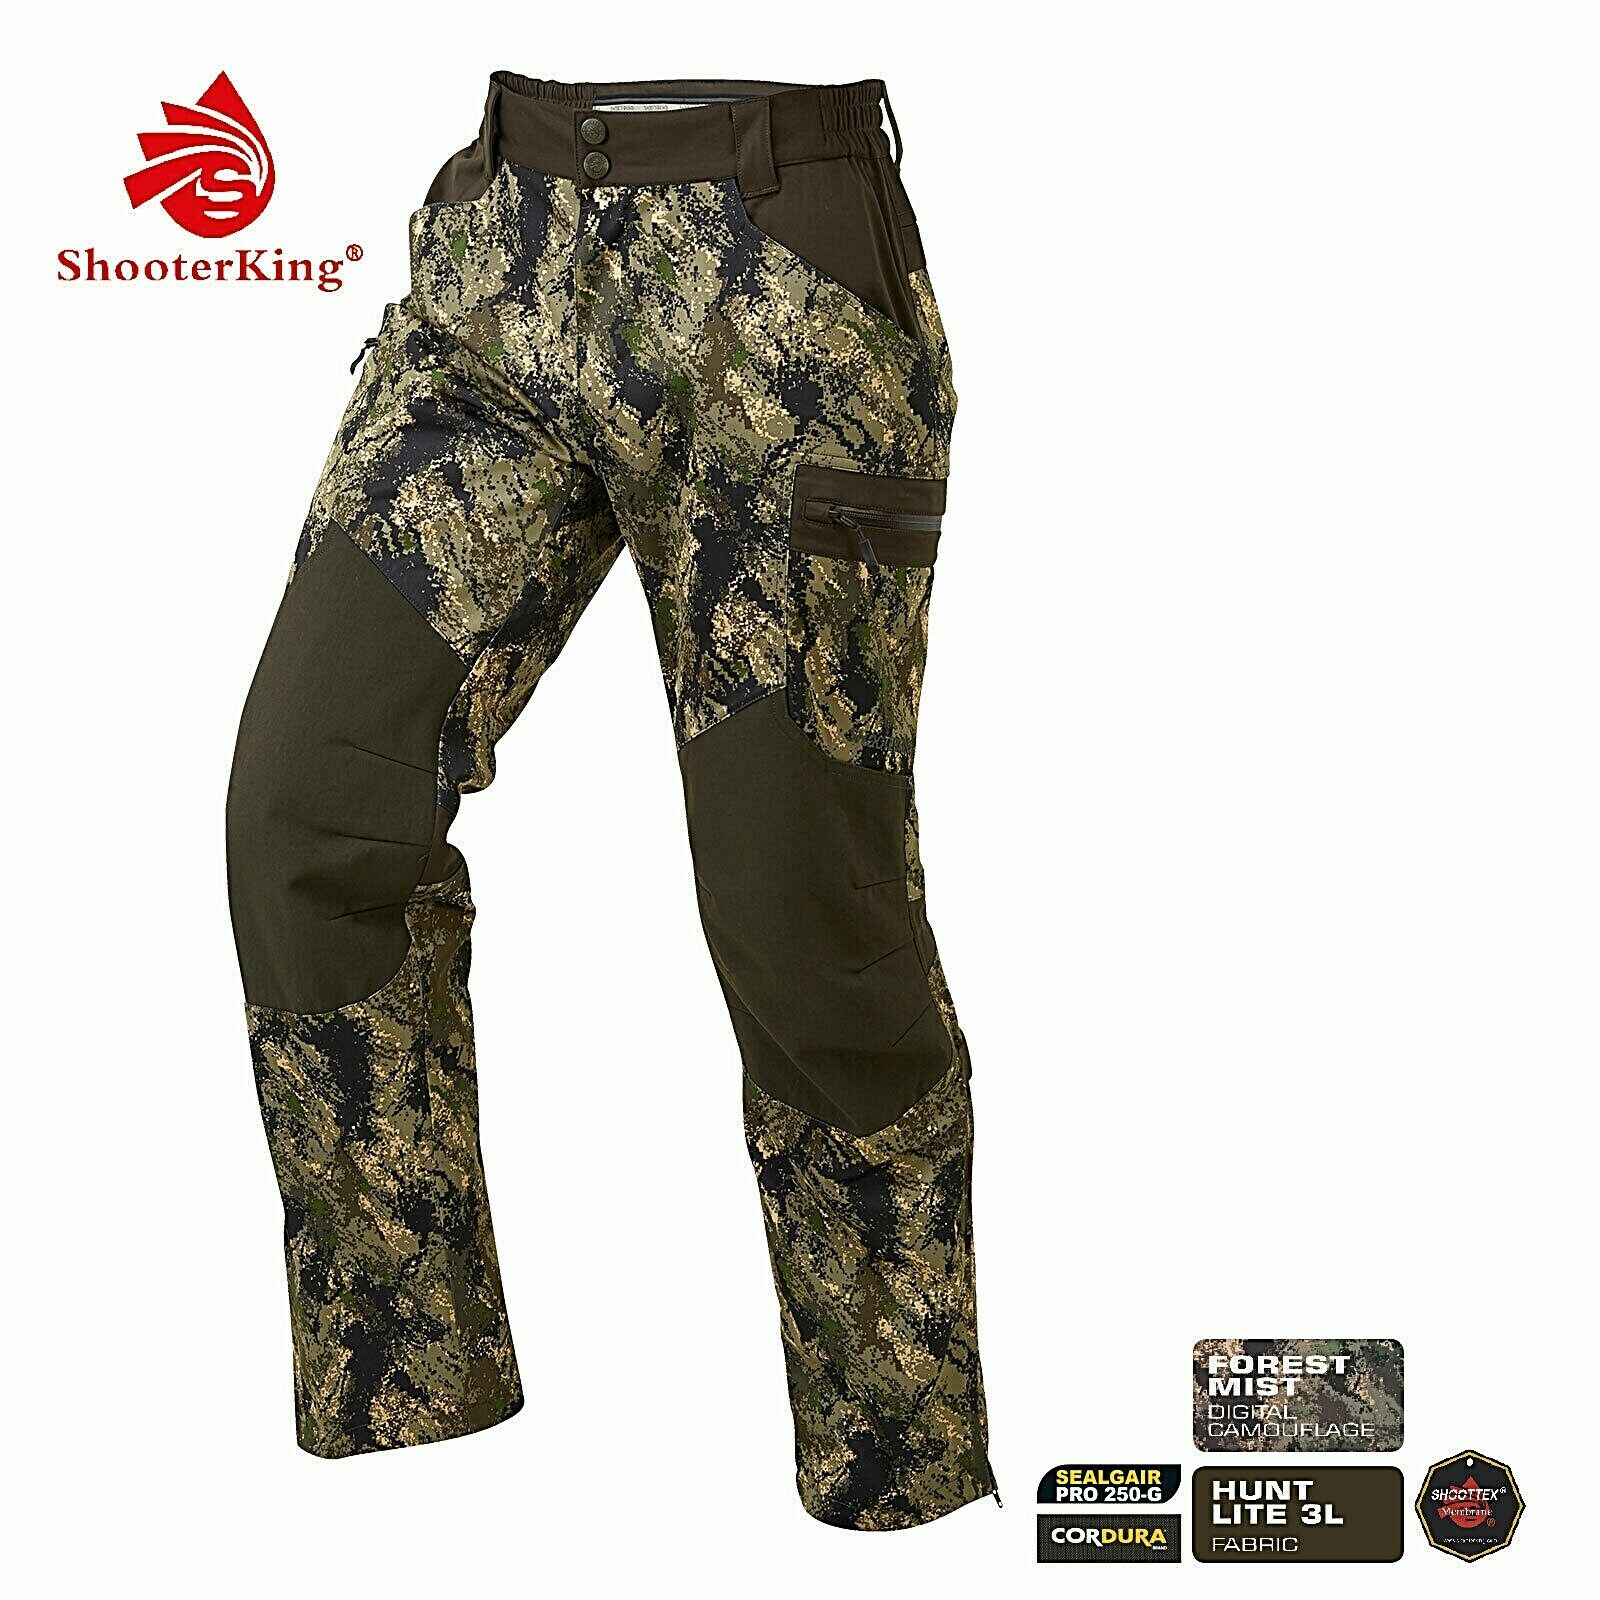 NEW    - Shooterking-Hunting Trousers huntflex-DIGITEX Camo Forest Mist-with Membrane